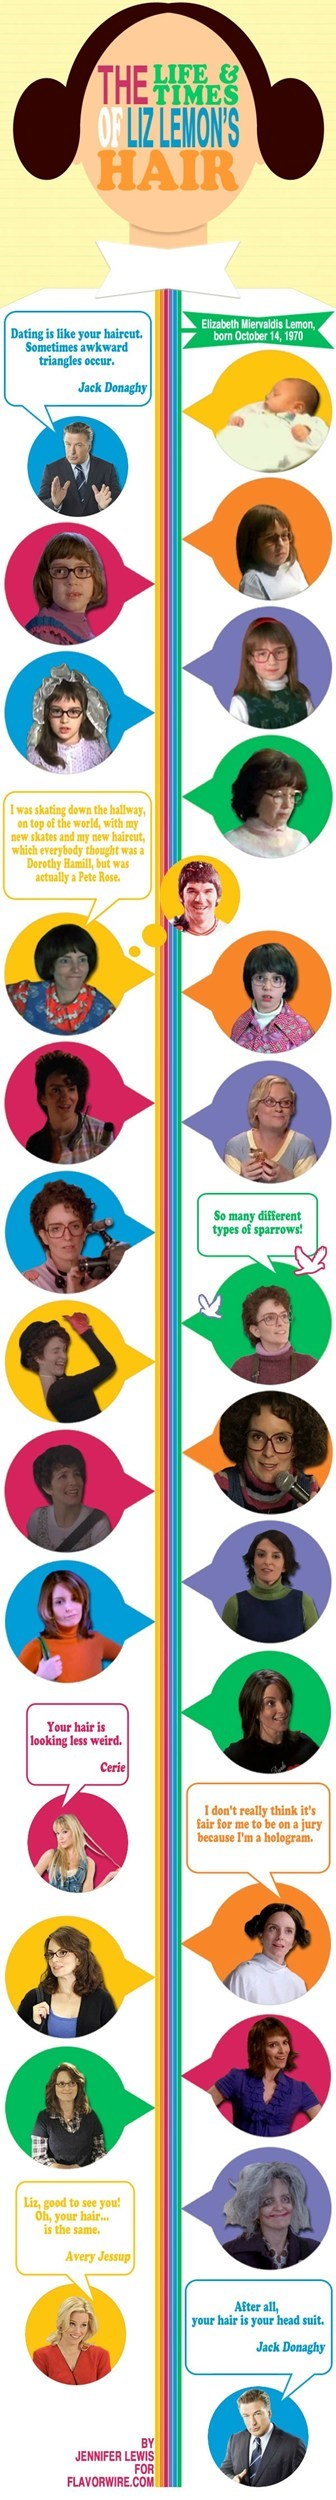 30 rock infographic liz lemon - 6236891136